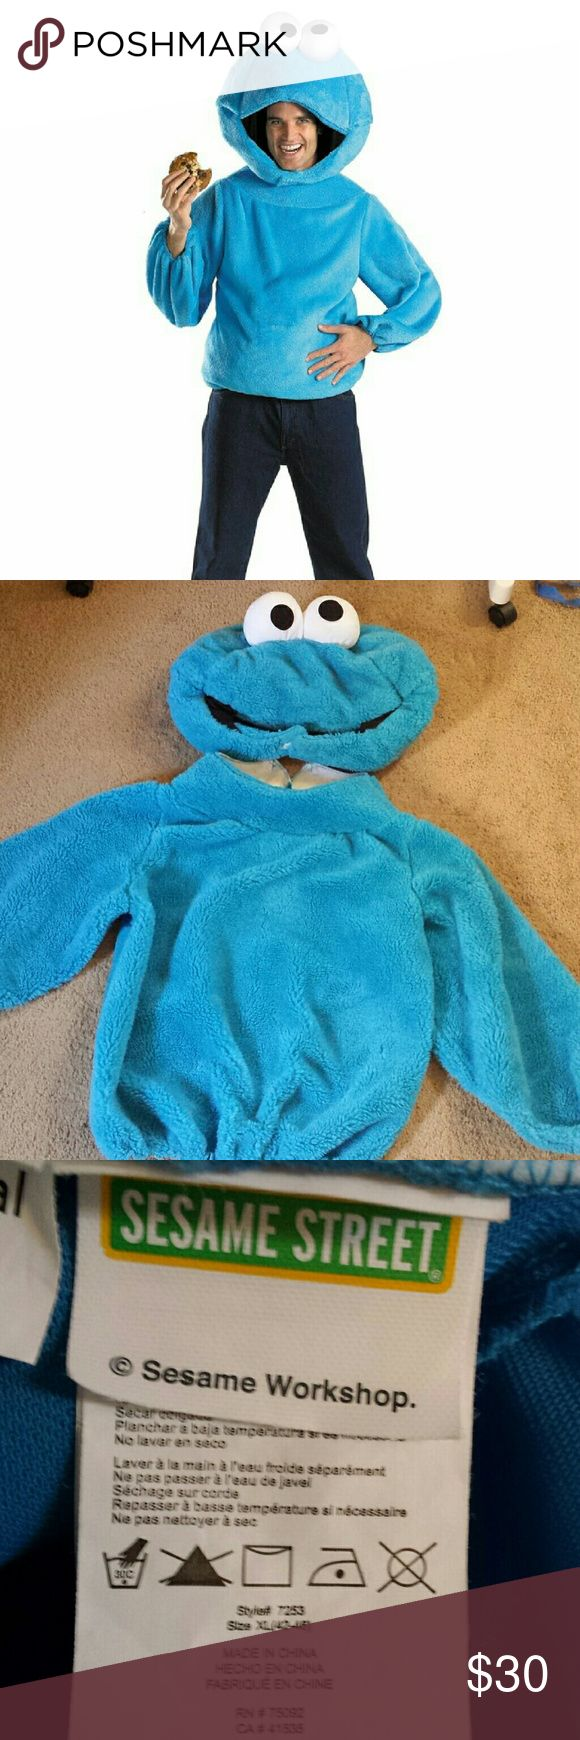 Sesame Street Cookie Monster Costume Sesame Street Cookie Monster Costume  Blue plush pull over shirt, Velcro closure, Stuffed plush Cookie Monster character headpiece that fastens with Velcro under the chin. Pants not included.  Size XL. Worn twice. Excellent condition.   Bundle with my Miss Chocolate Chip costume for an awesome couples costume! Sesame Street Tops